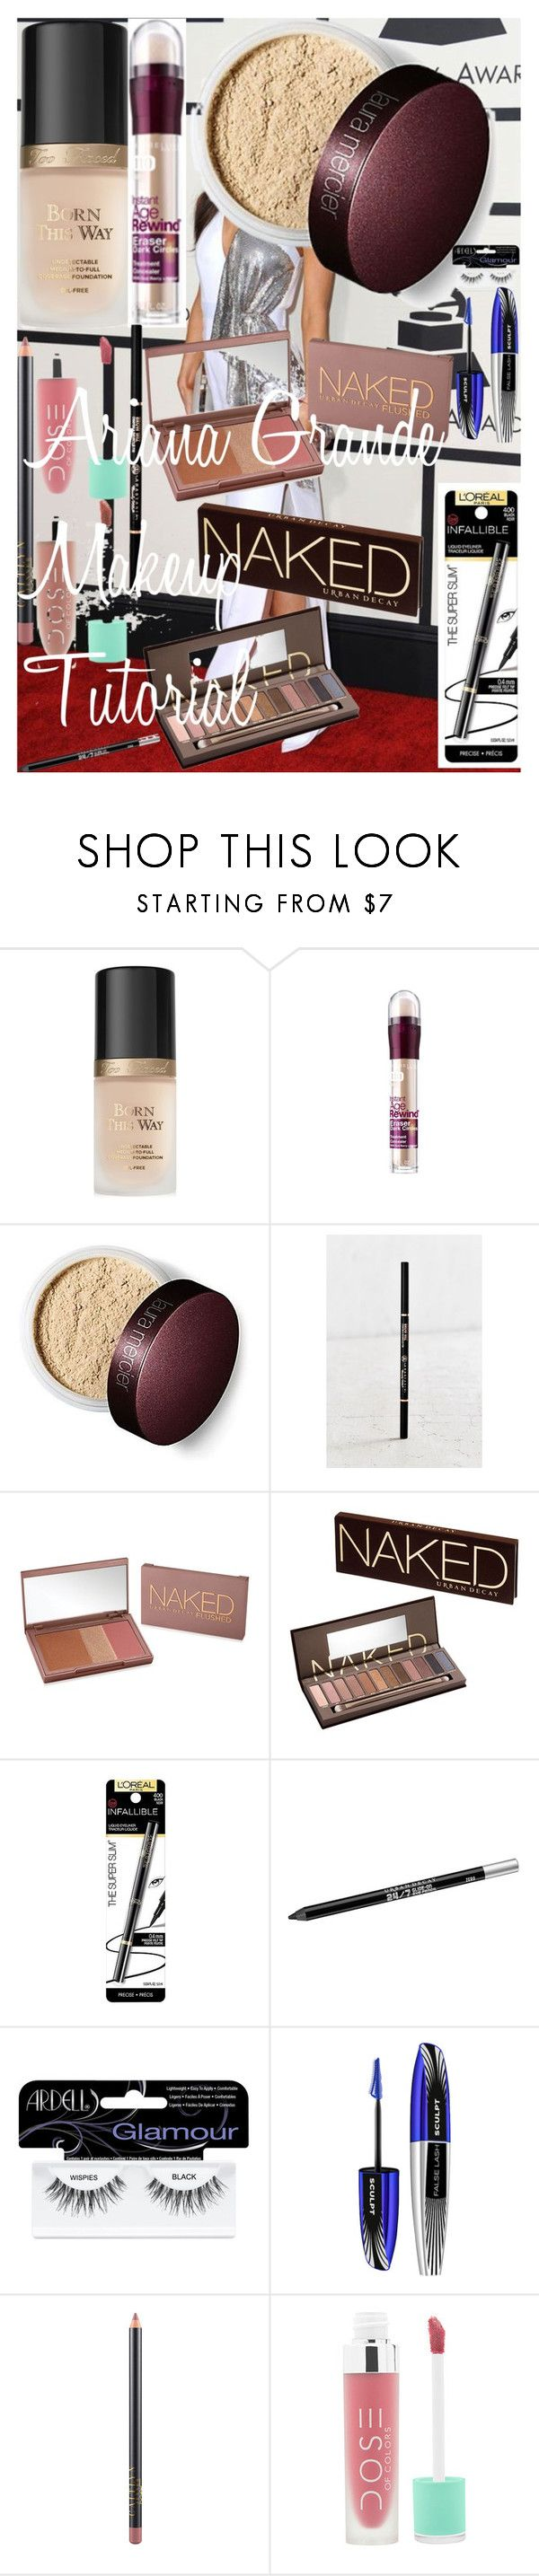 """""""Ariana Grande Makeup Tutorial"""" by oroartye-1 on Polyvore featuring beauty, Versace, Too Faced Cosmetics, Maybelline, Anastasia Beverly Hills, Urban Decay, L'Oréal Paris, Ardell and MAC Cosmetics"""